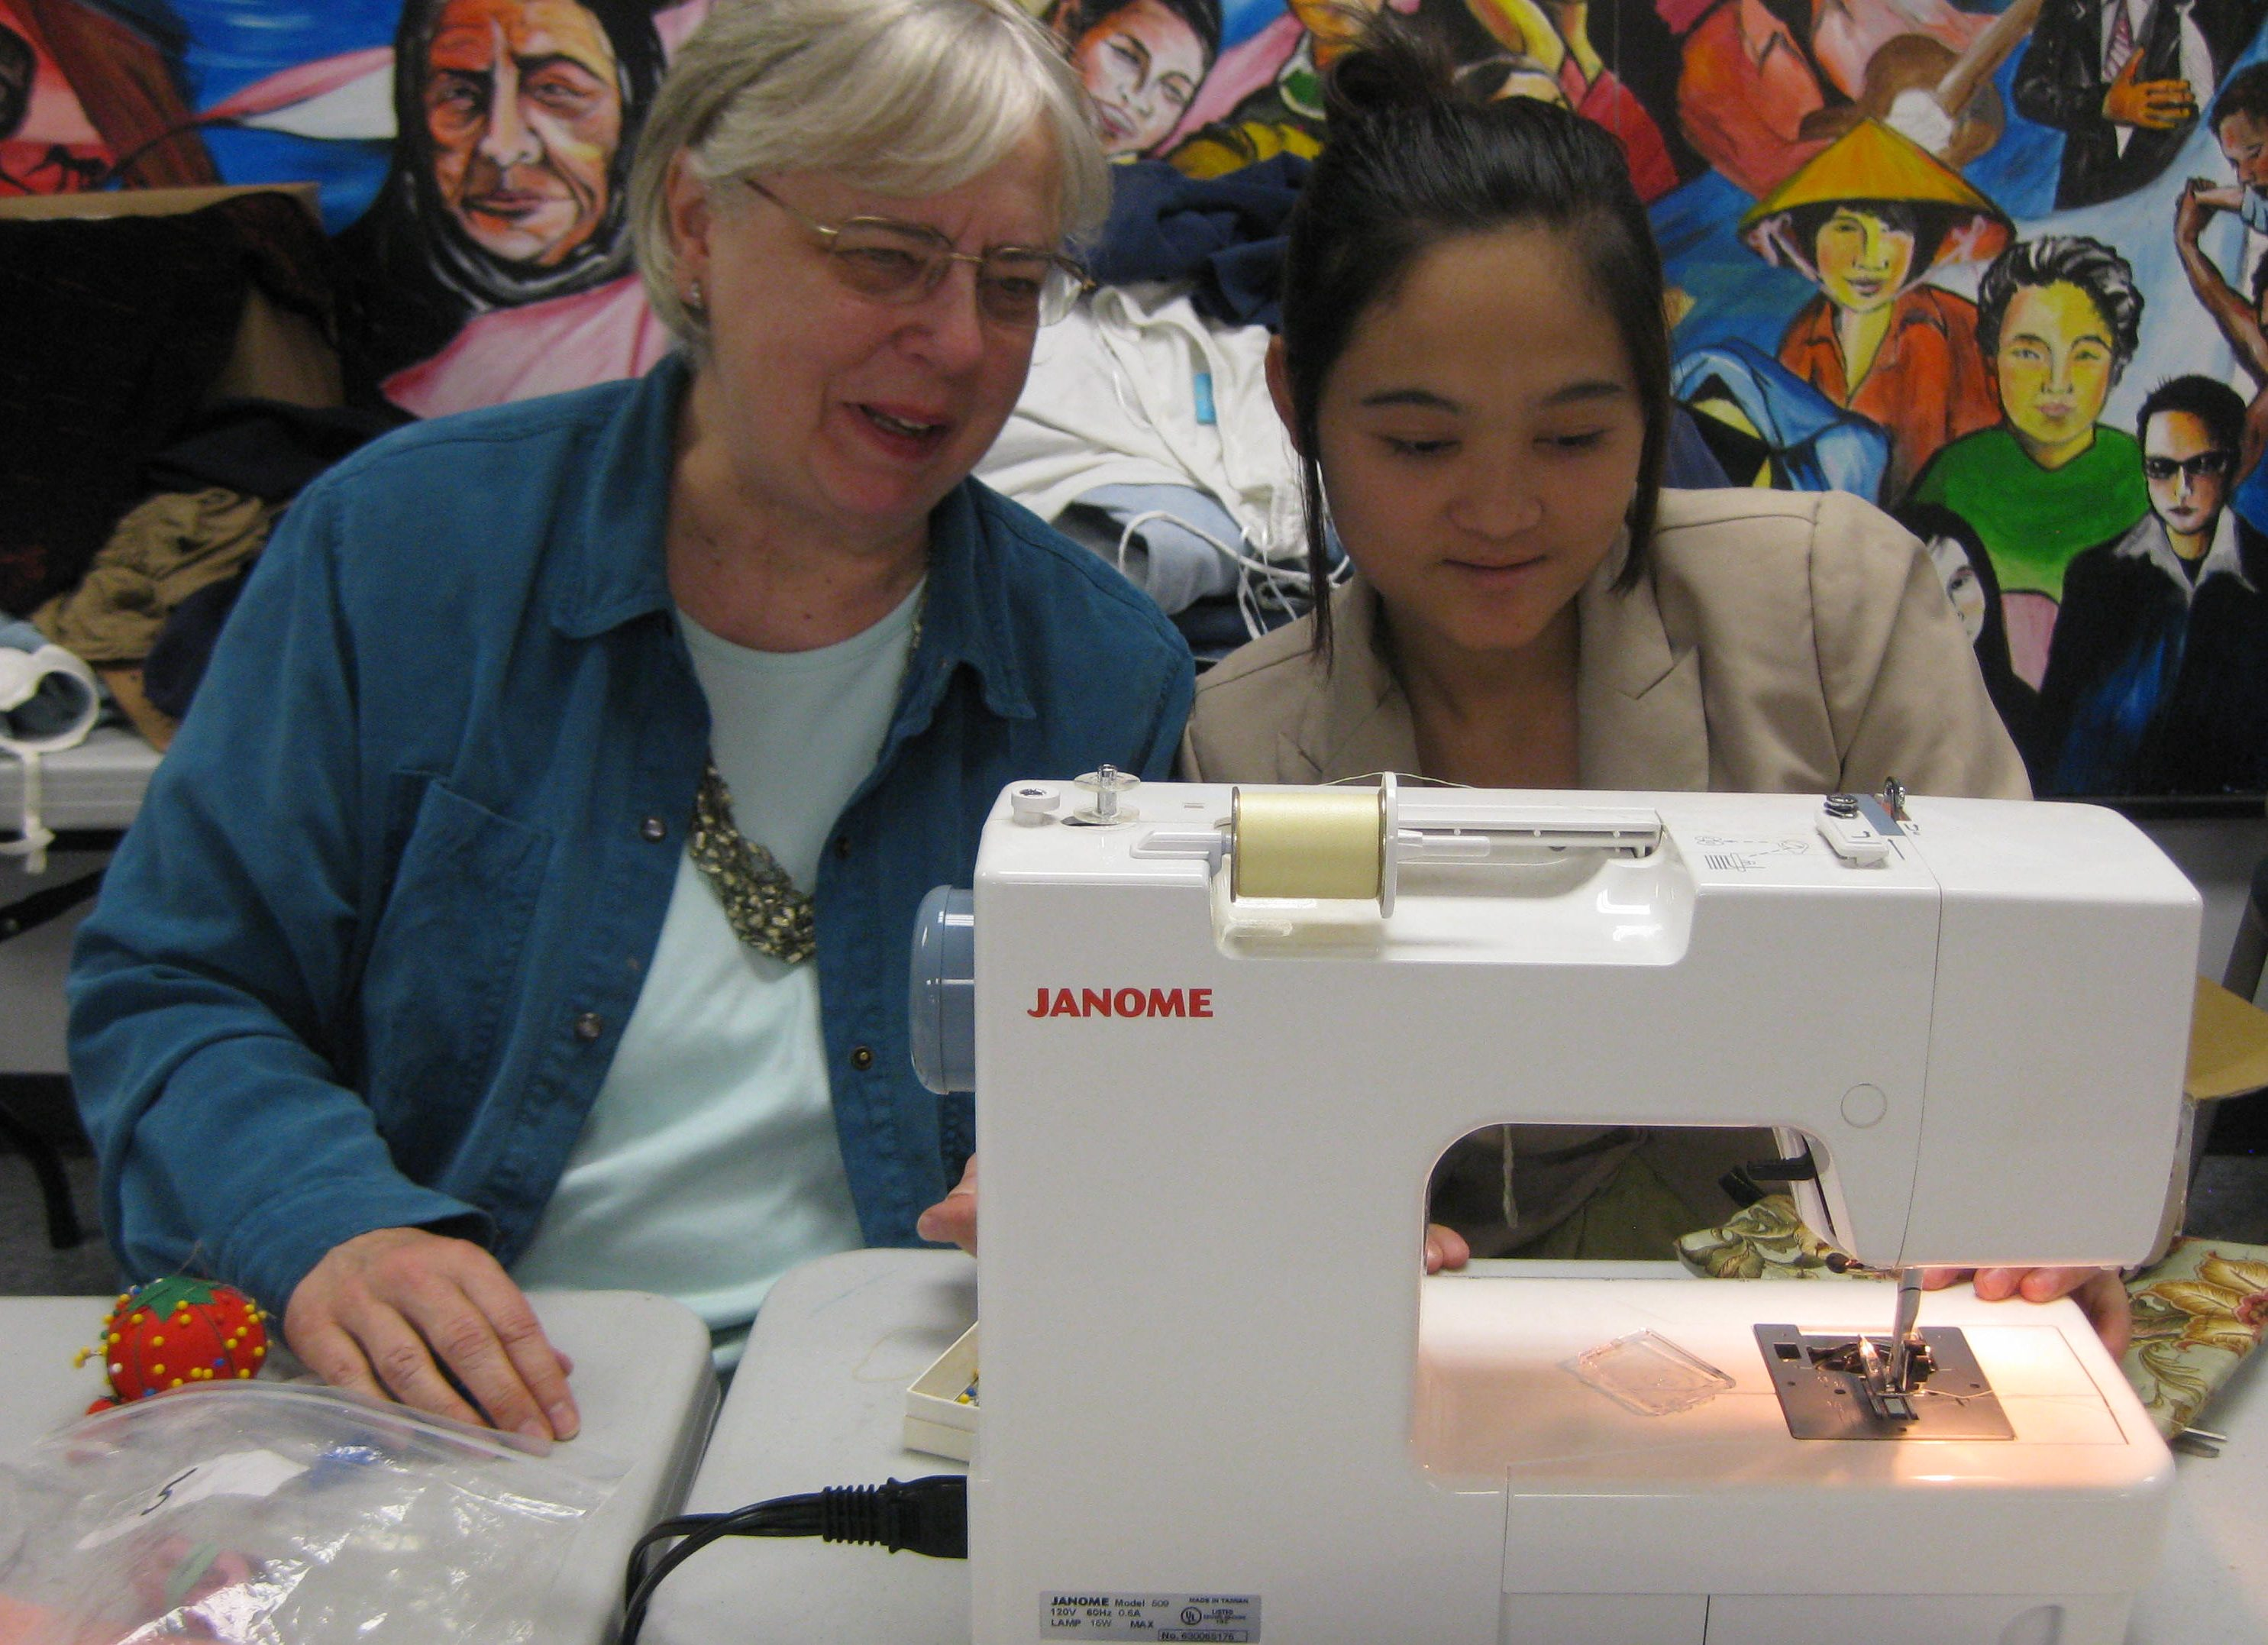 Sewing class - getting to know the machine